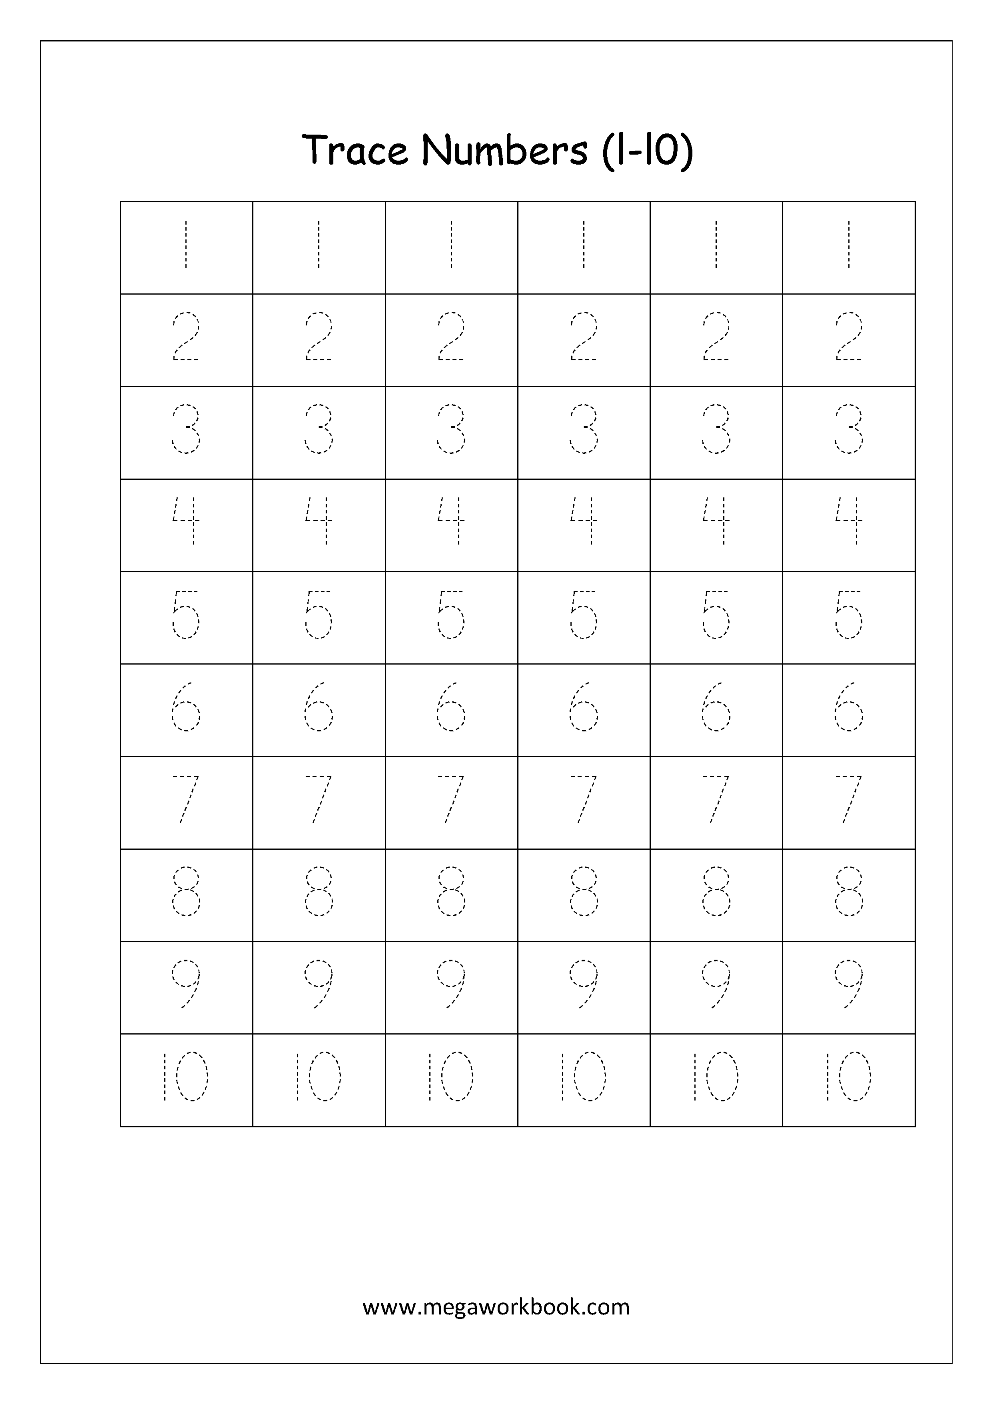 Free Math Worksheets - Number Tracing and Writing (1-10 ...